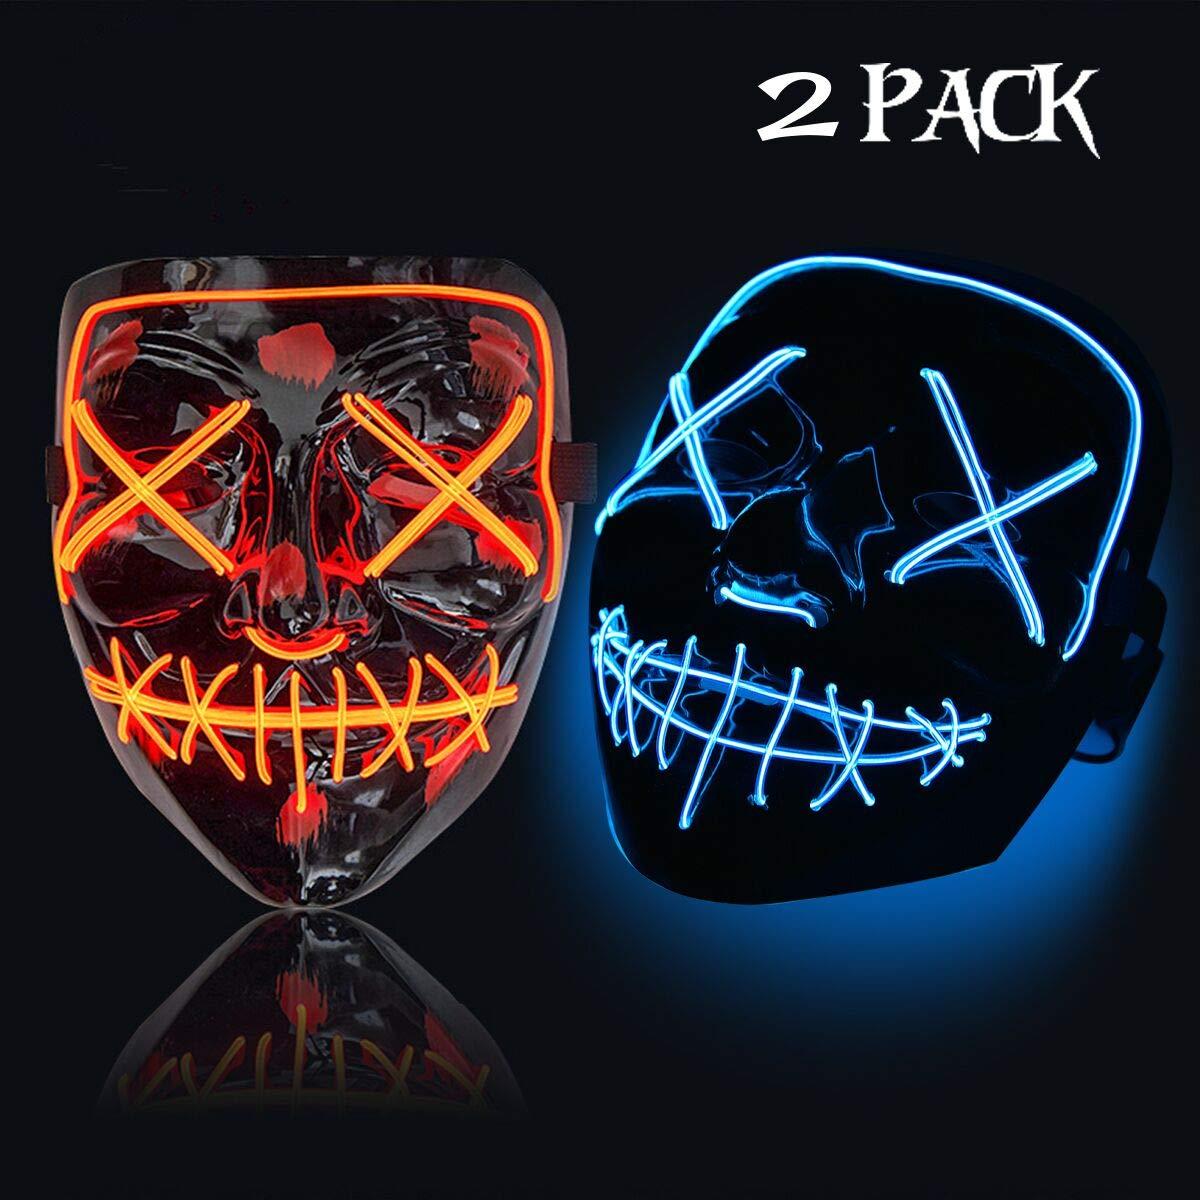 Cool LED Light-Up Masks for Halloween, Raves, Etc.